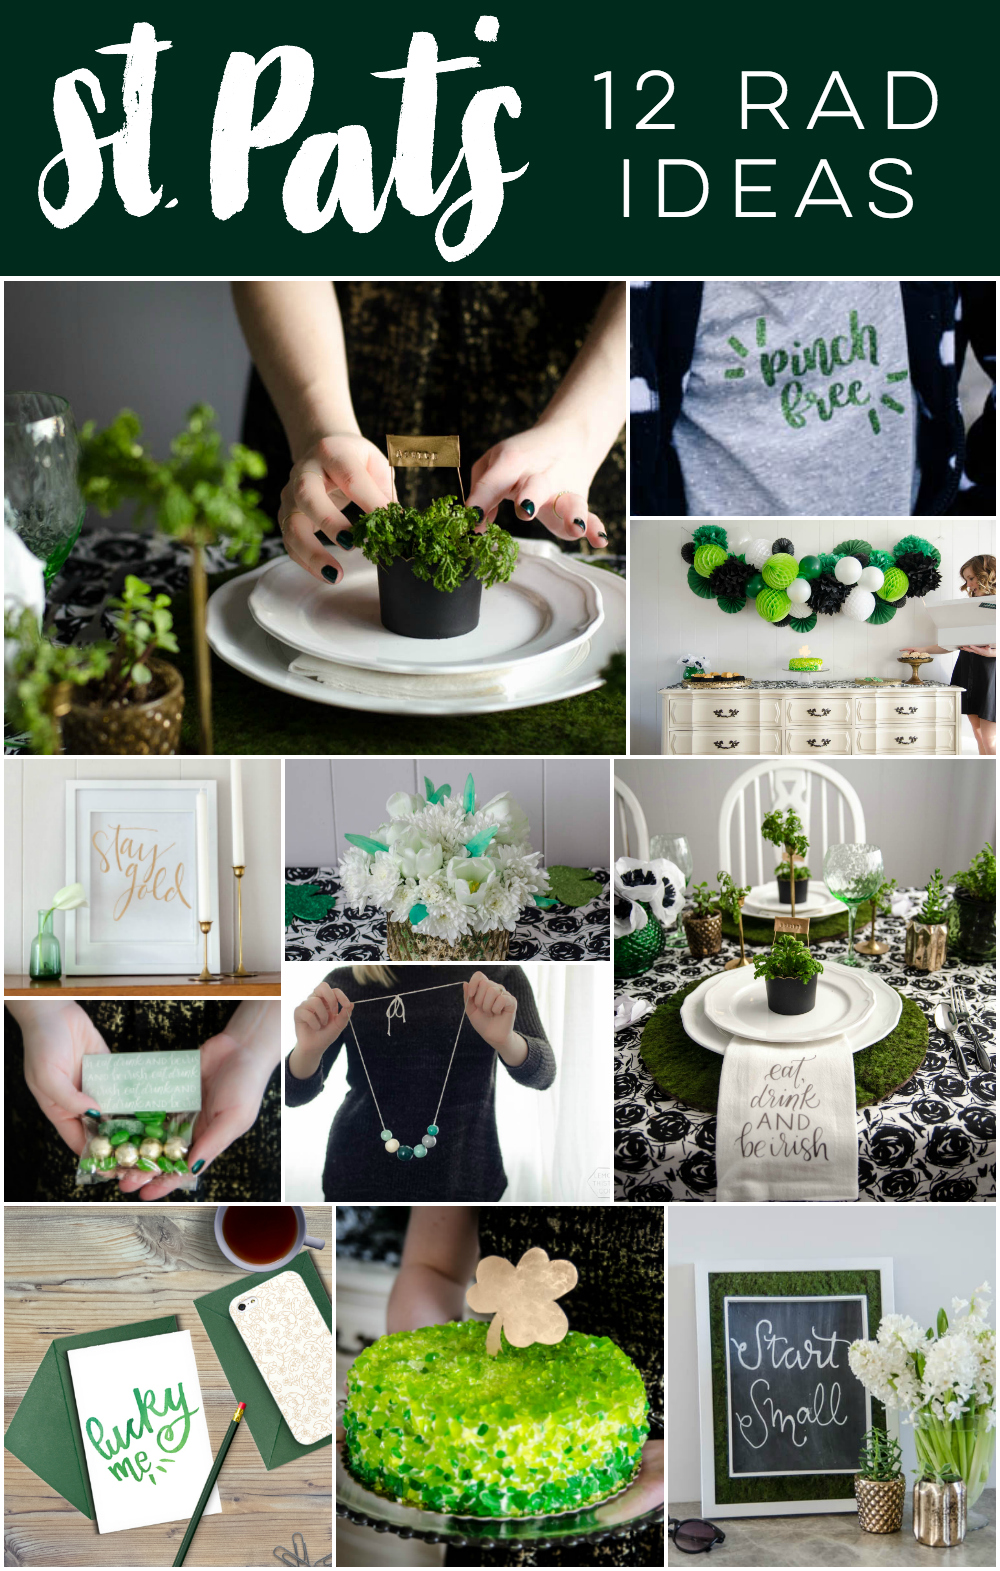 12 Rad Ideas For Saint Patricks Day Lemon Thistle